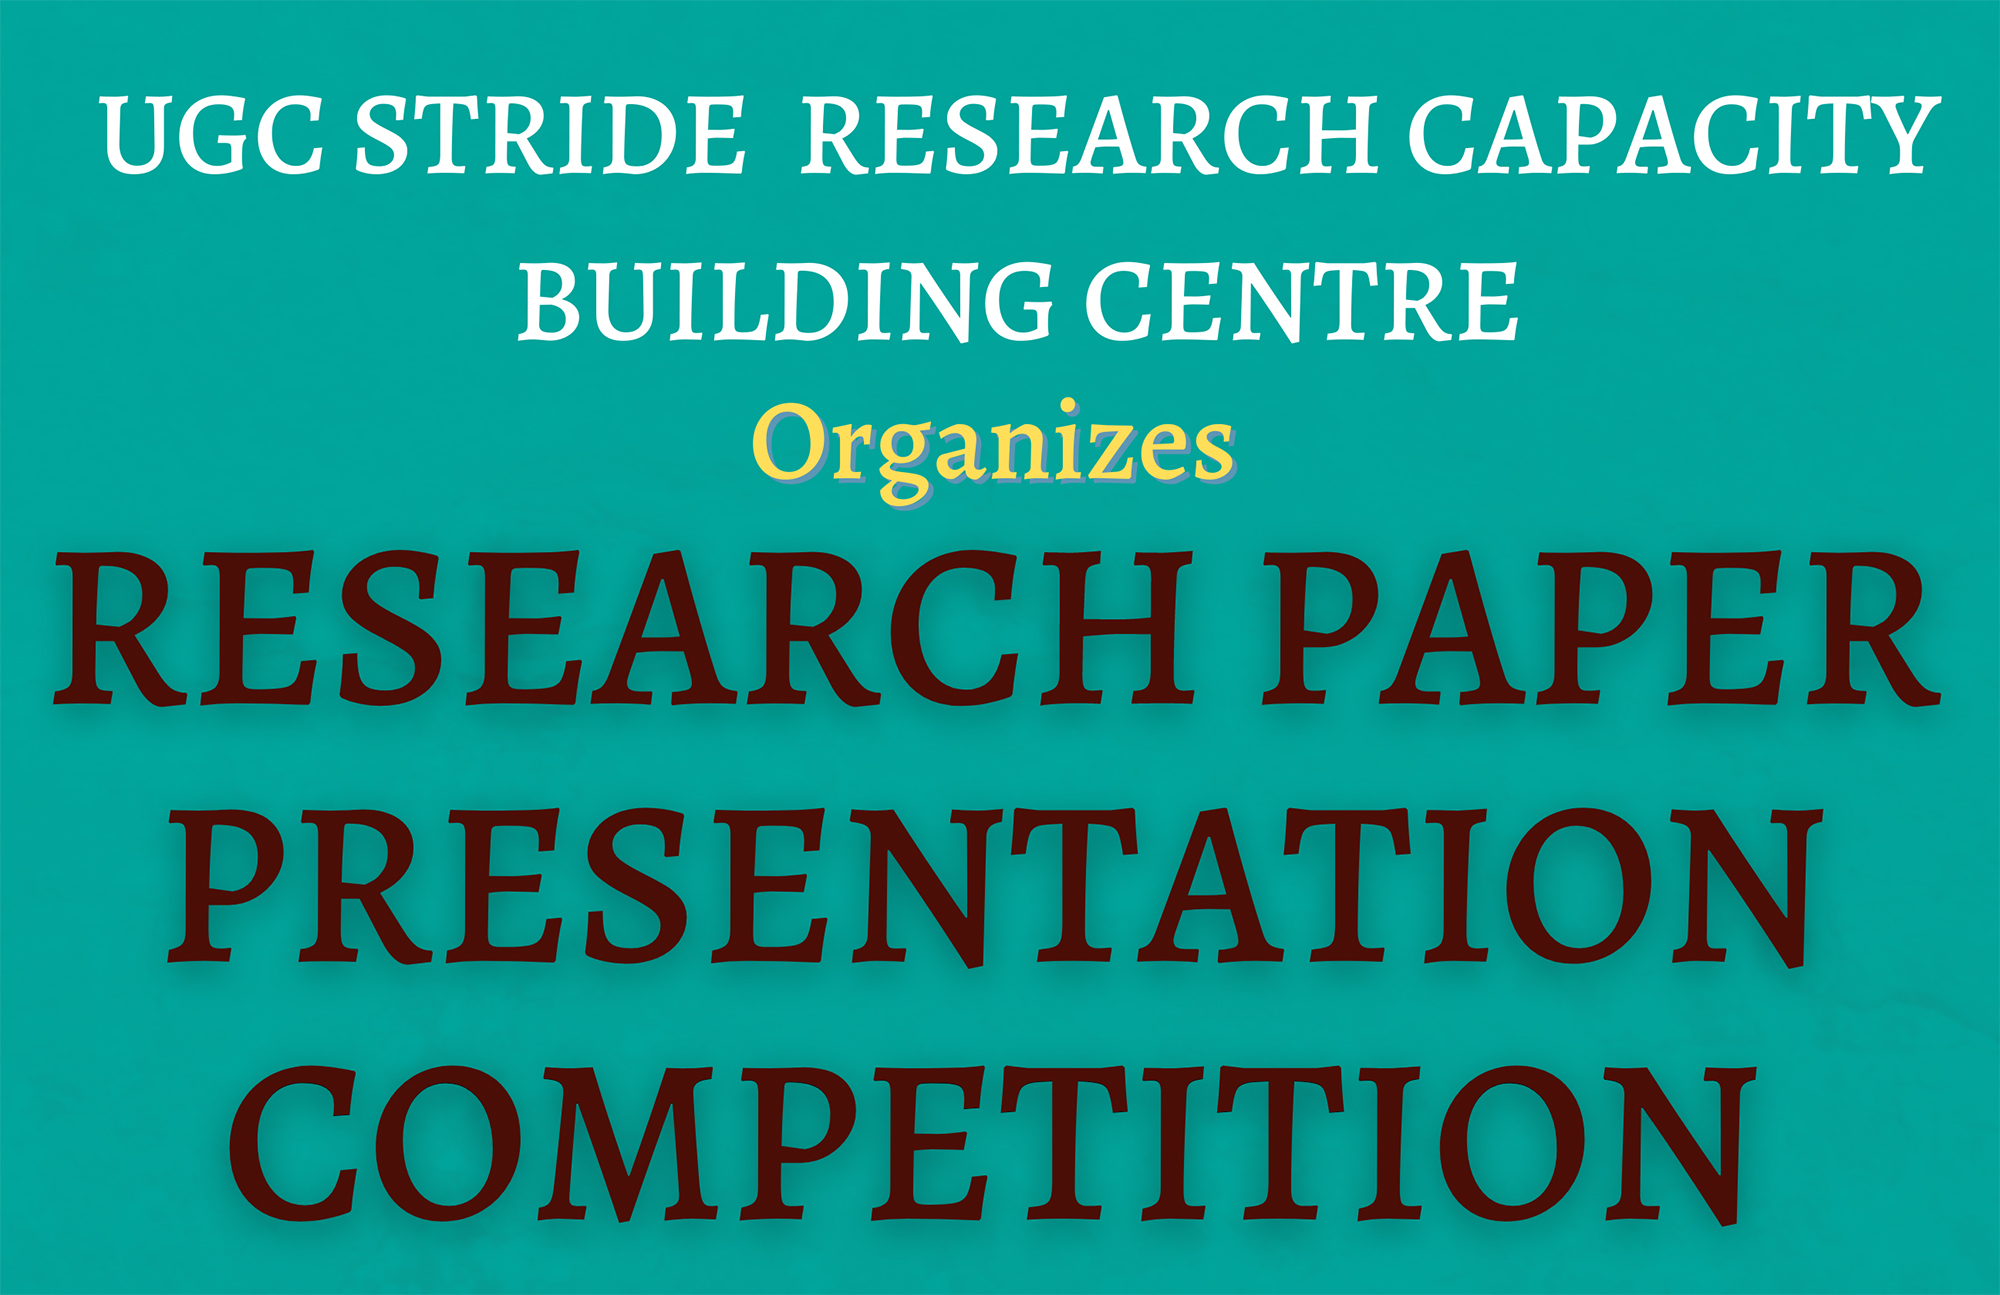 UGC STRIDE RESEARCH CAPACITY BUILDING CENTRE -      WINNERS OF VIRTUAL  RESEARCH PRESENTATION COMPETITION  HELD ON 10TH AND 11TH JUNE 2021